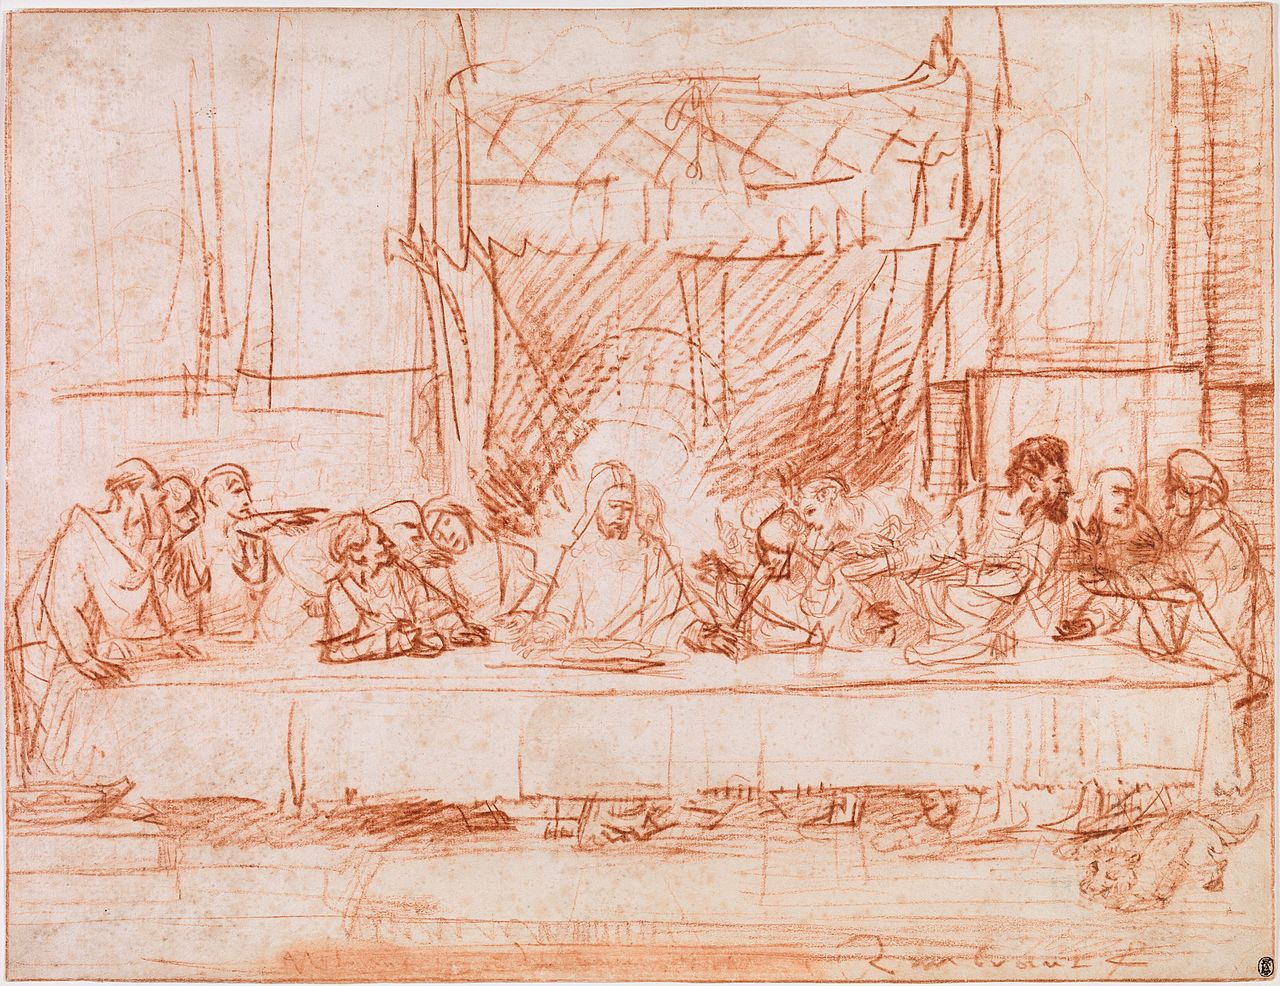 the last supper by leonardo da vinci 2 essay The last supper is a late 15th-century mural painting by leonardo da vinci  housed by the  during world war ii, on august 15, 1943, the refectory was  struck by allied bombing protective sandbagging prevented the painting from  being struck.